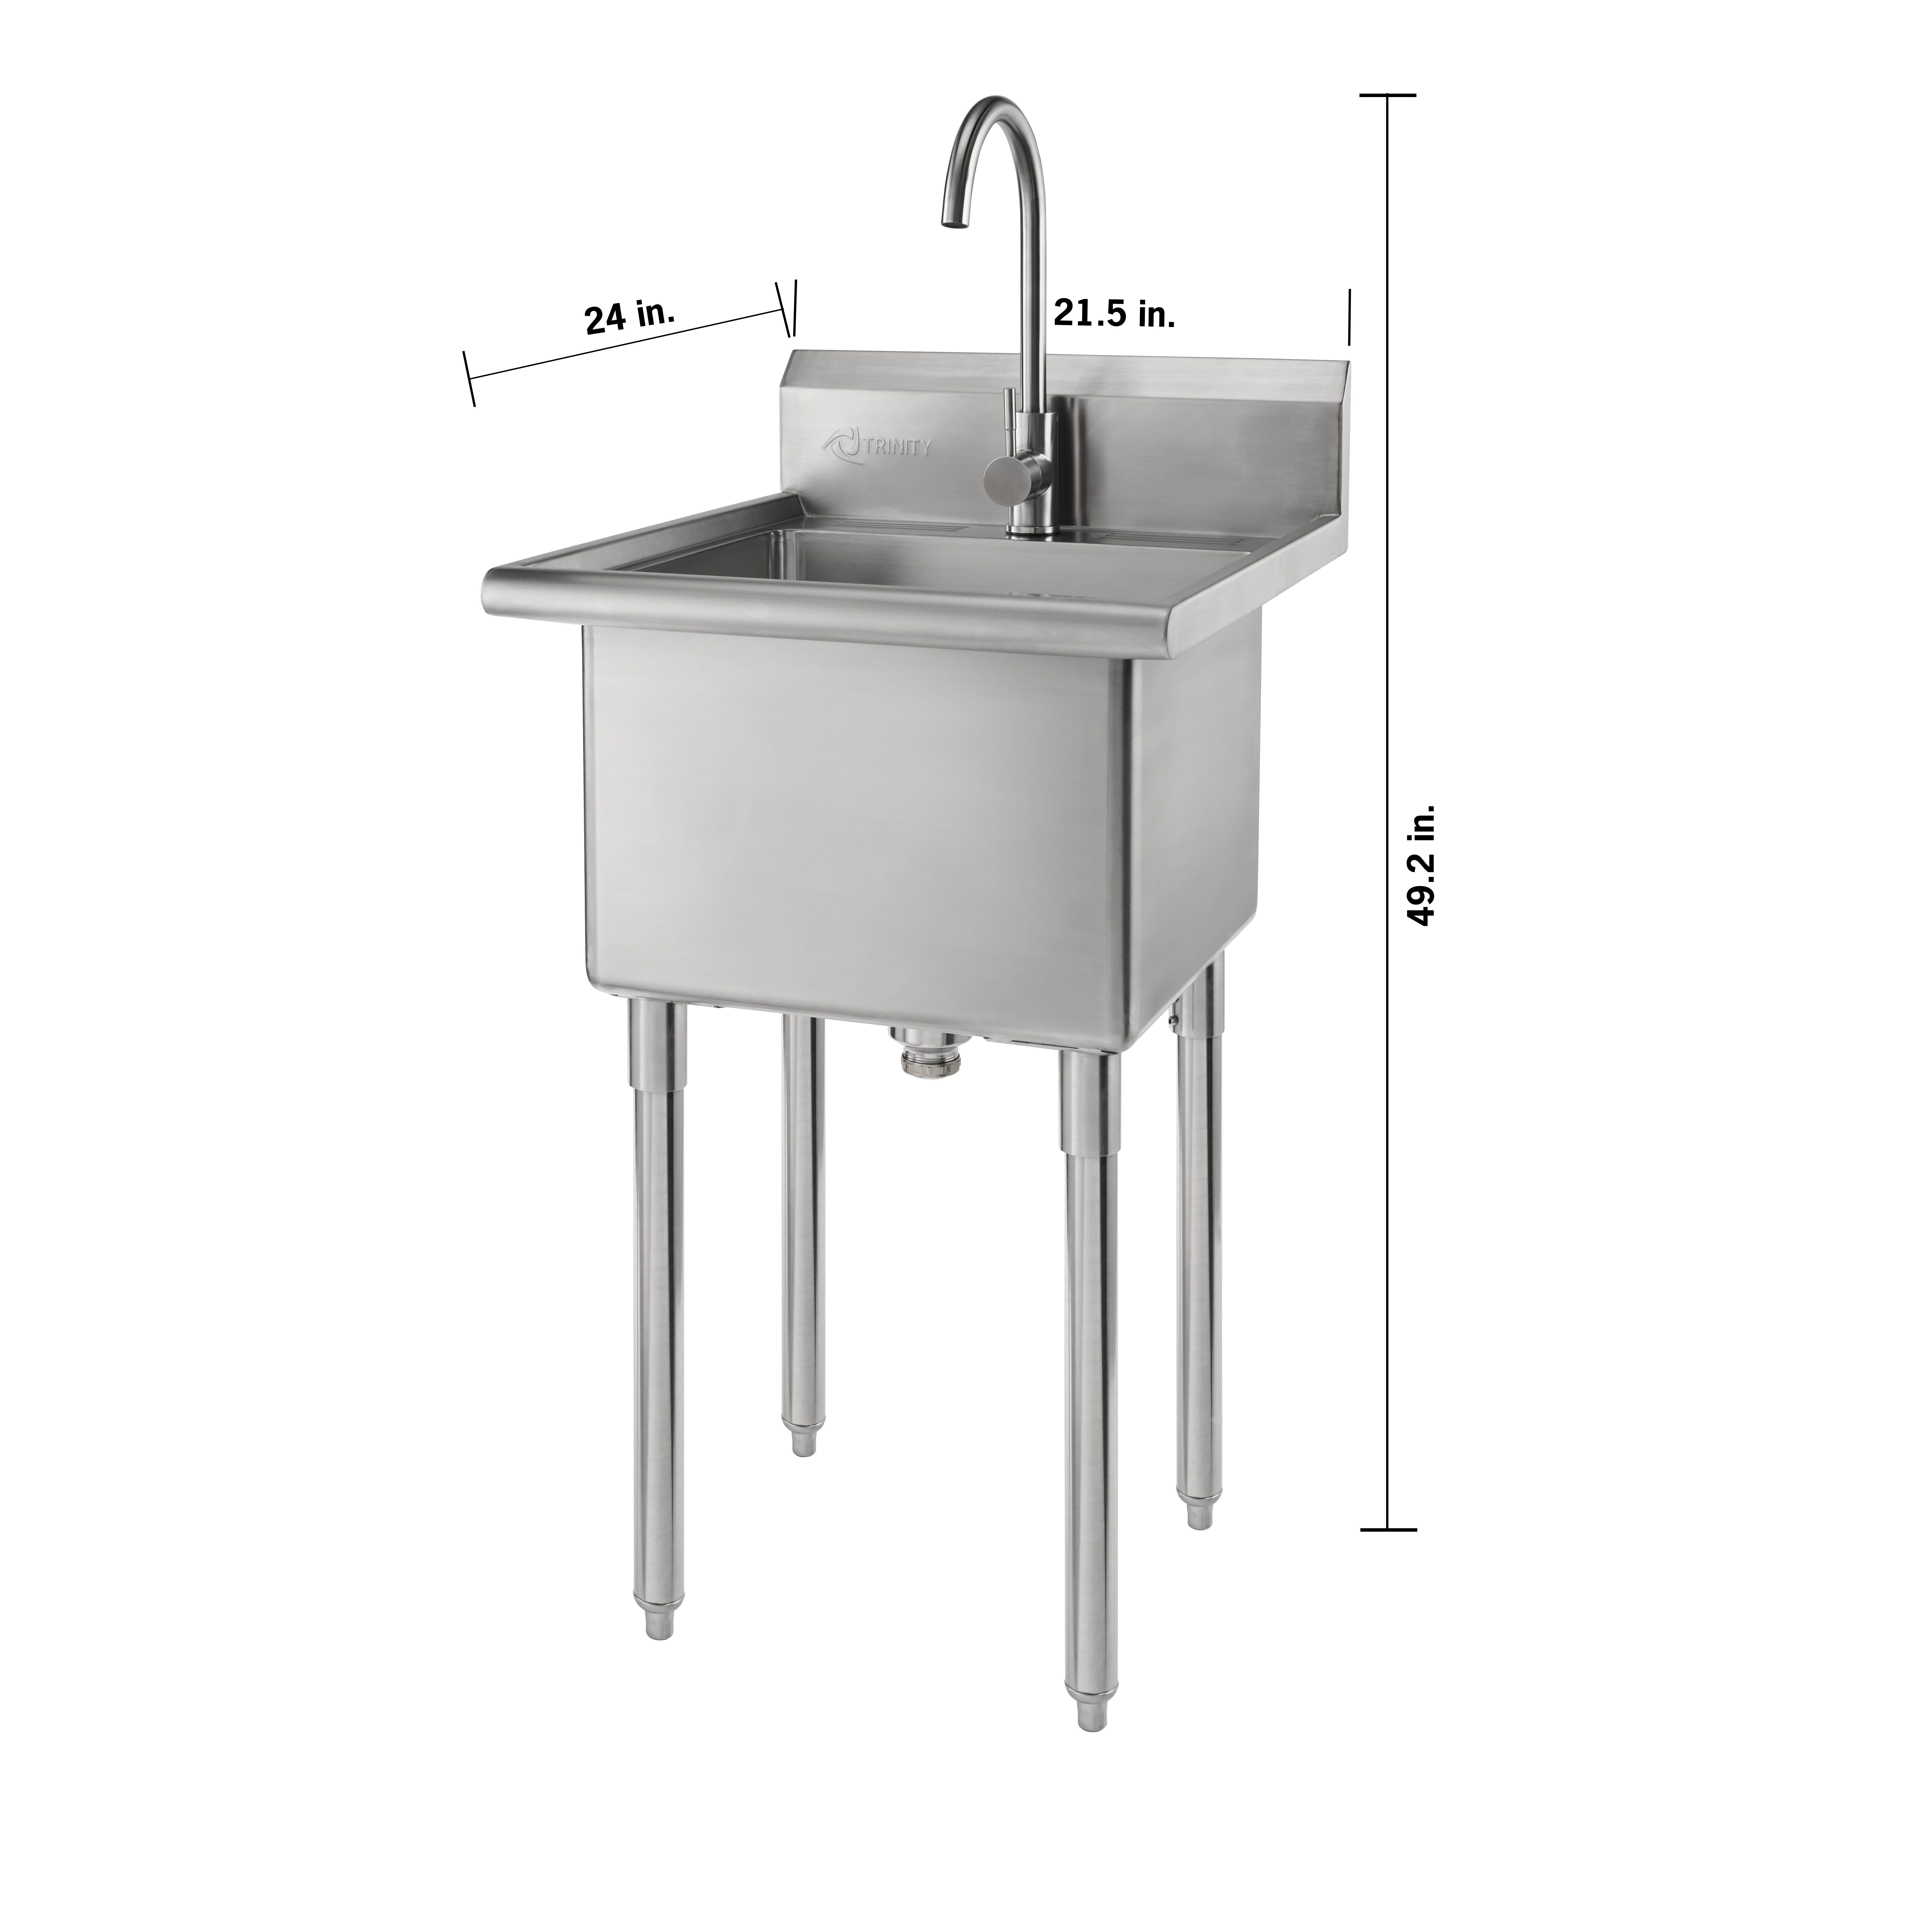 21 5 X 24 Freestanding Laundry Sink With Faucet With Images